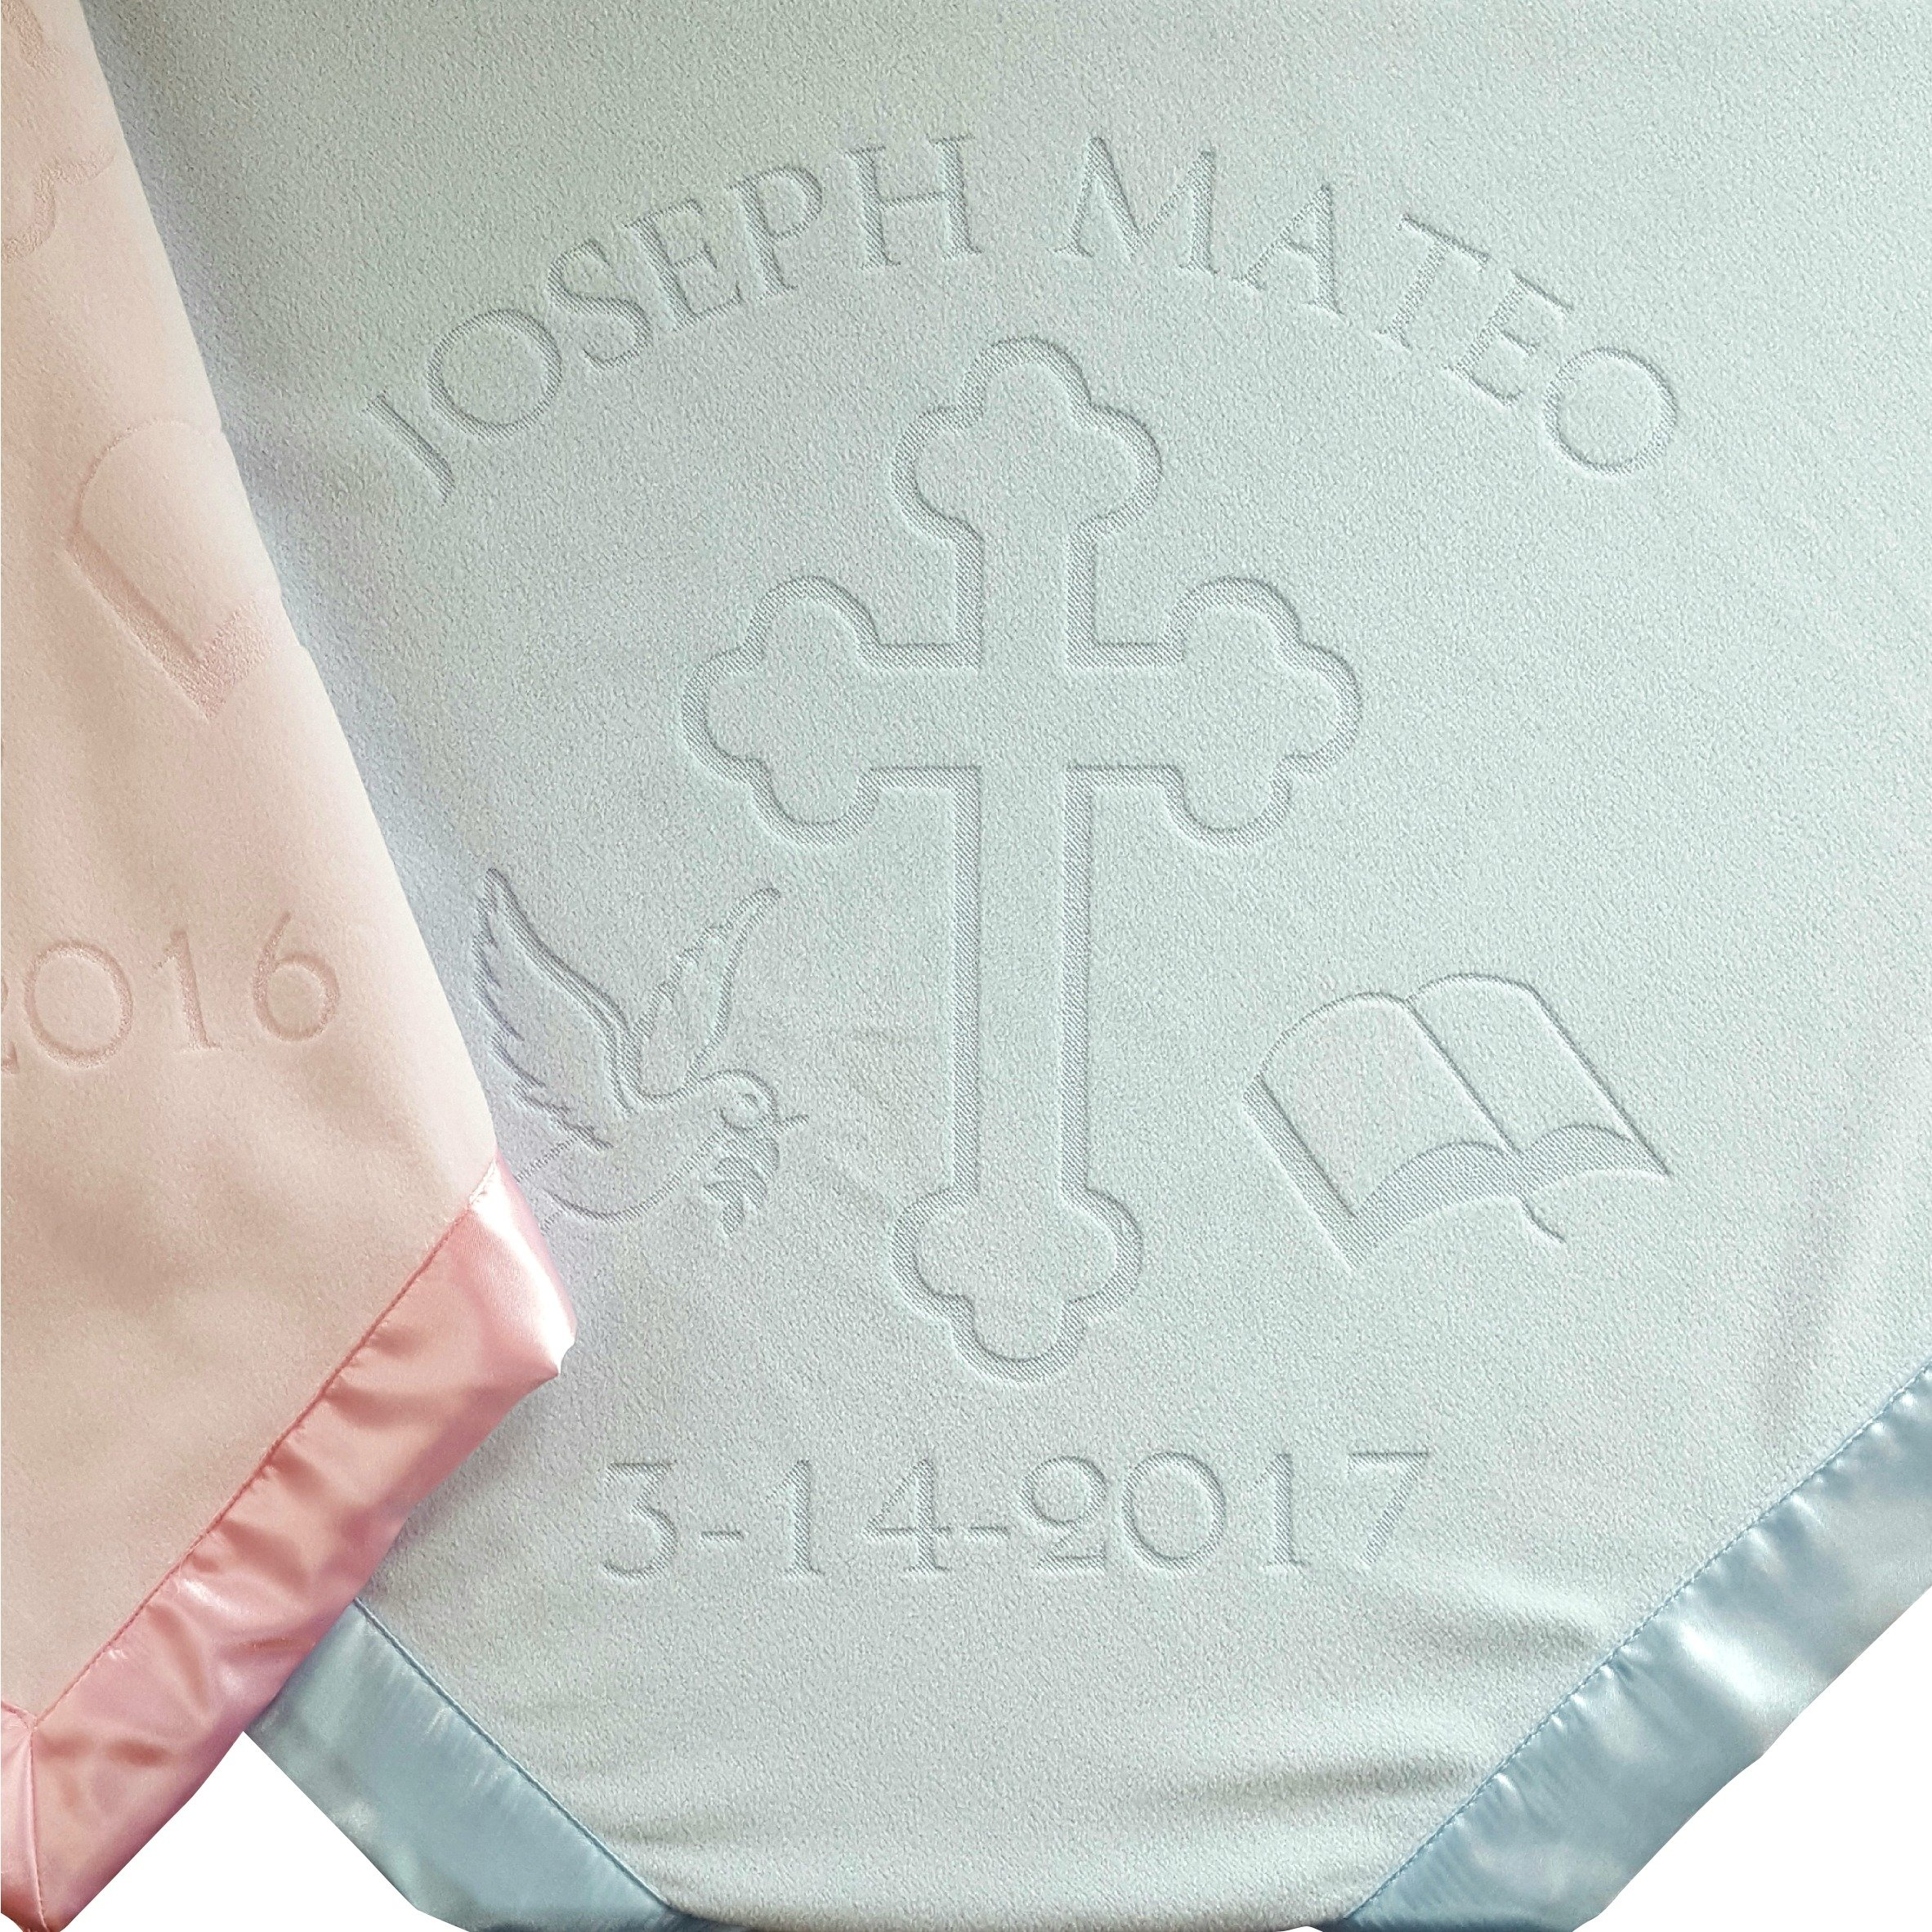 Baptism or Christening Baby Blanket Gift, Personalized Girls Or Boys Gifts With Name and Date, Cross and Bible